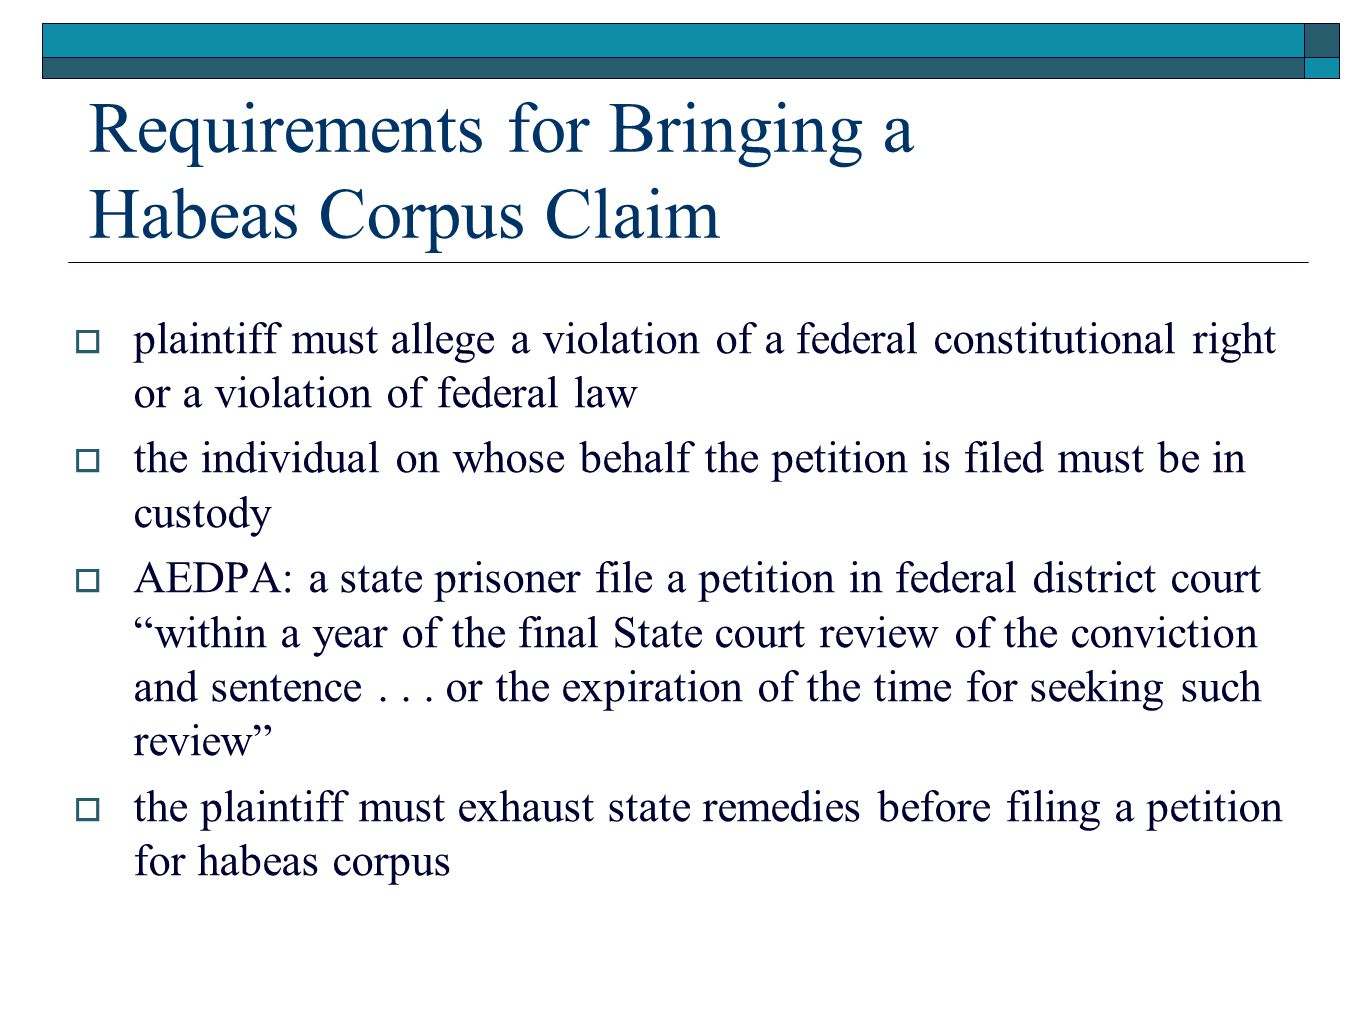 Requirements for Bringing a Habeas Corpus Claim  plaintiff must allege a violation of a federal constitutional right or a violation of federal law  the individual on whose behalf the petition is filed must be in custody  AEDPA: a state prisoner file a petition in federal district court within a year of the final State court review of the conviction and sentence...